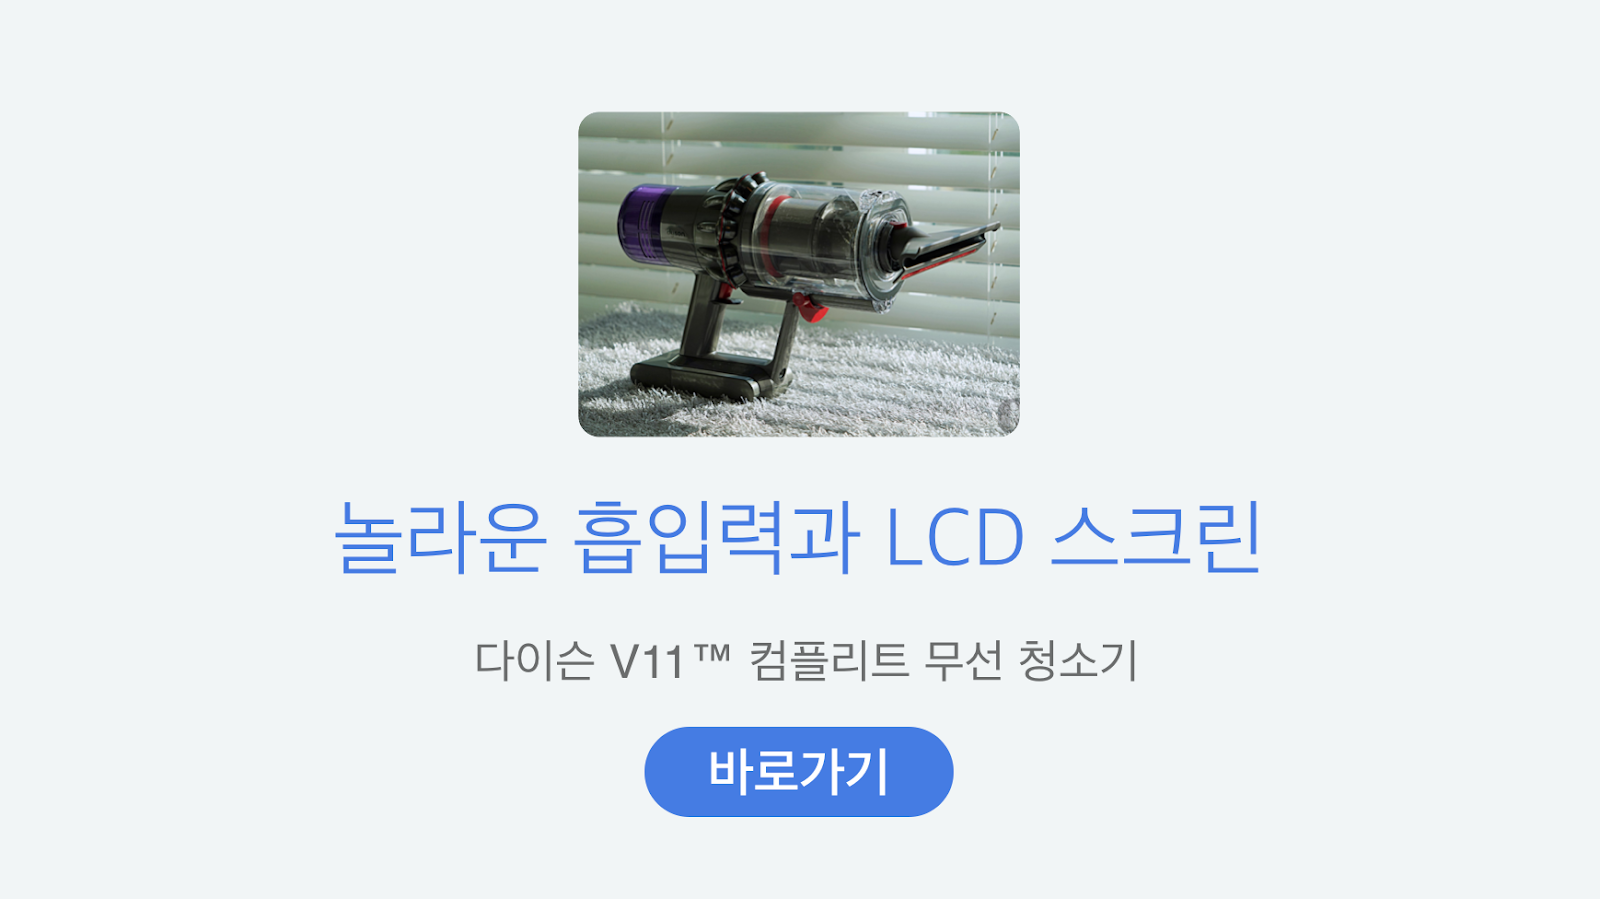 https://www.kr.dyson.com/products/cord-free/dyson-v11tm-vacuums/overview